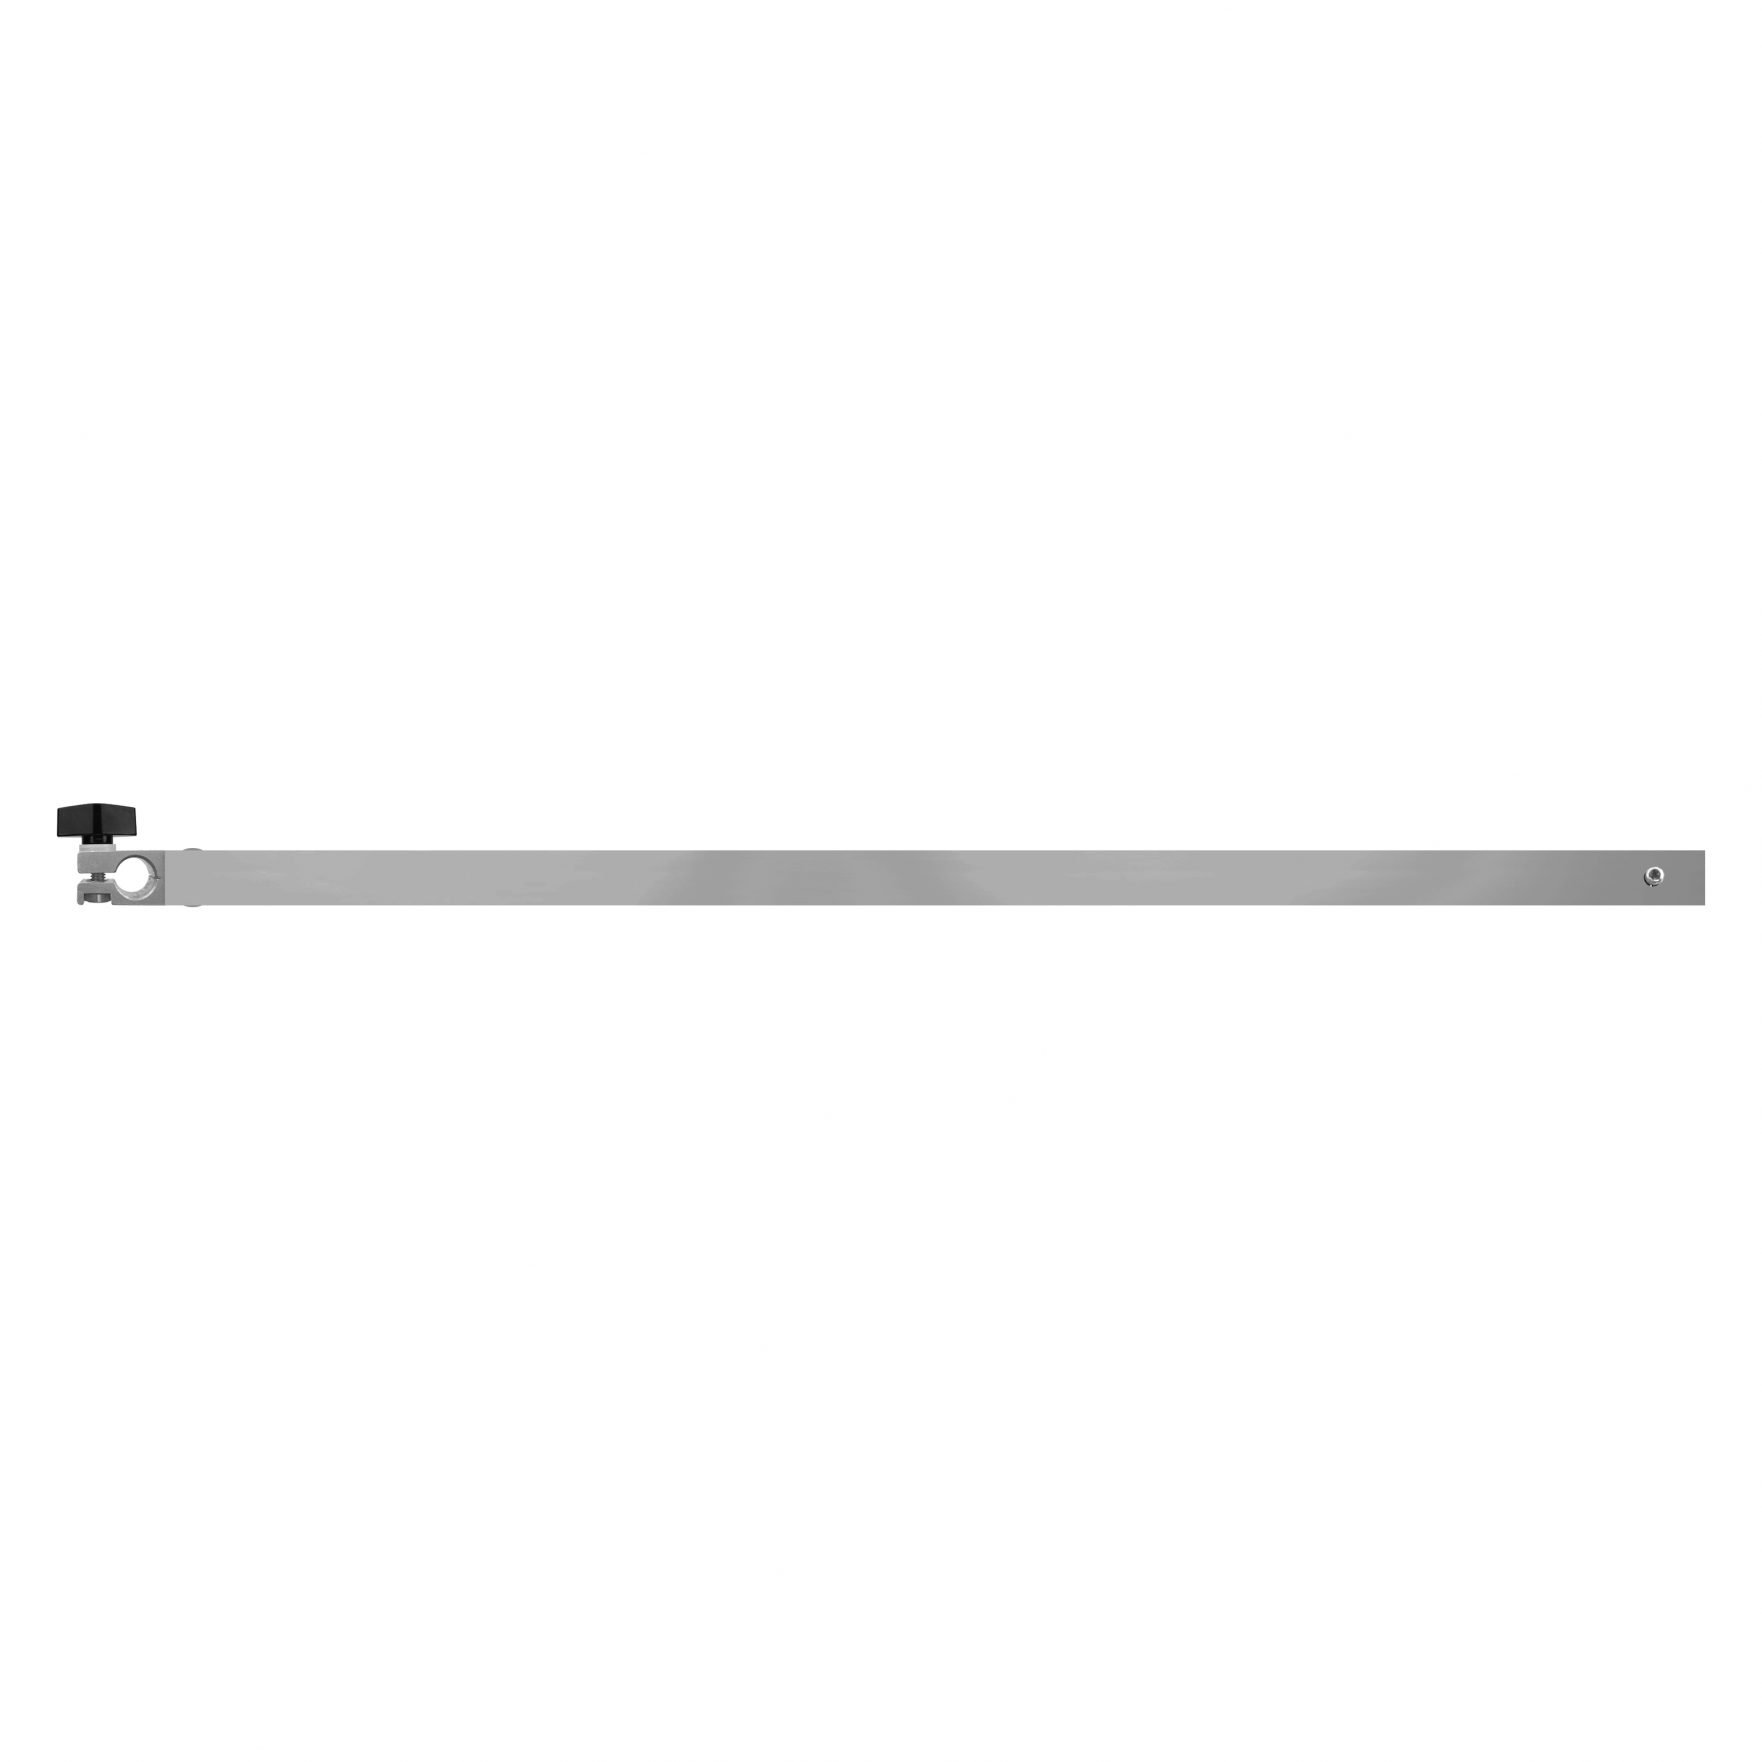 Bold Ivy Canoe Stabilizer Extension Arm - Single - Top